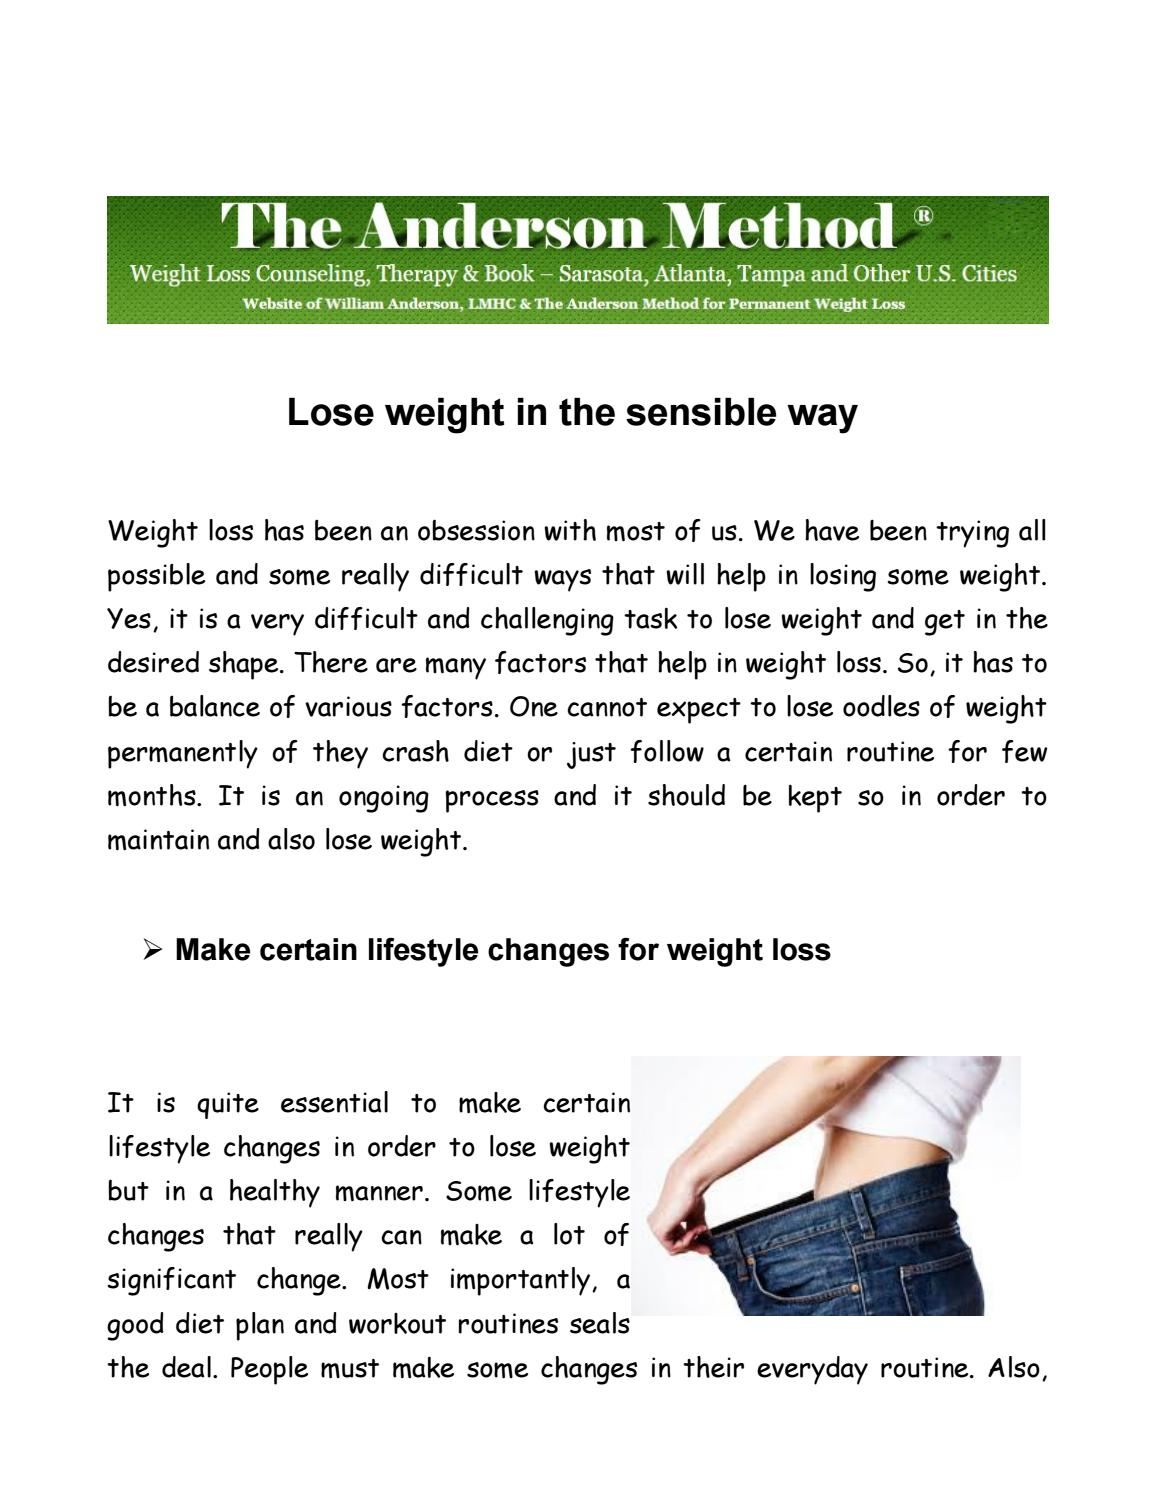 Everyday changes to lose weight